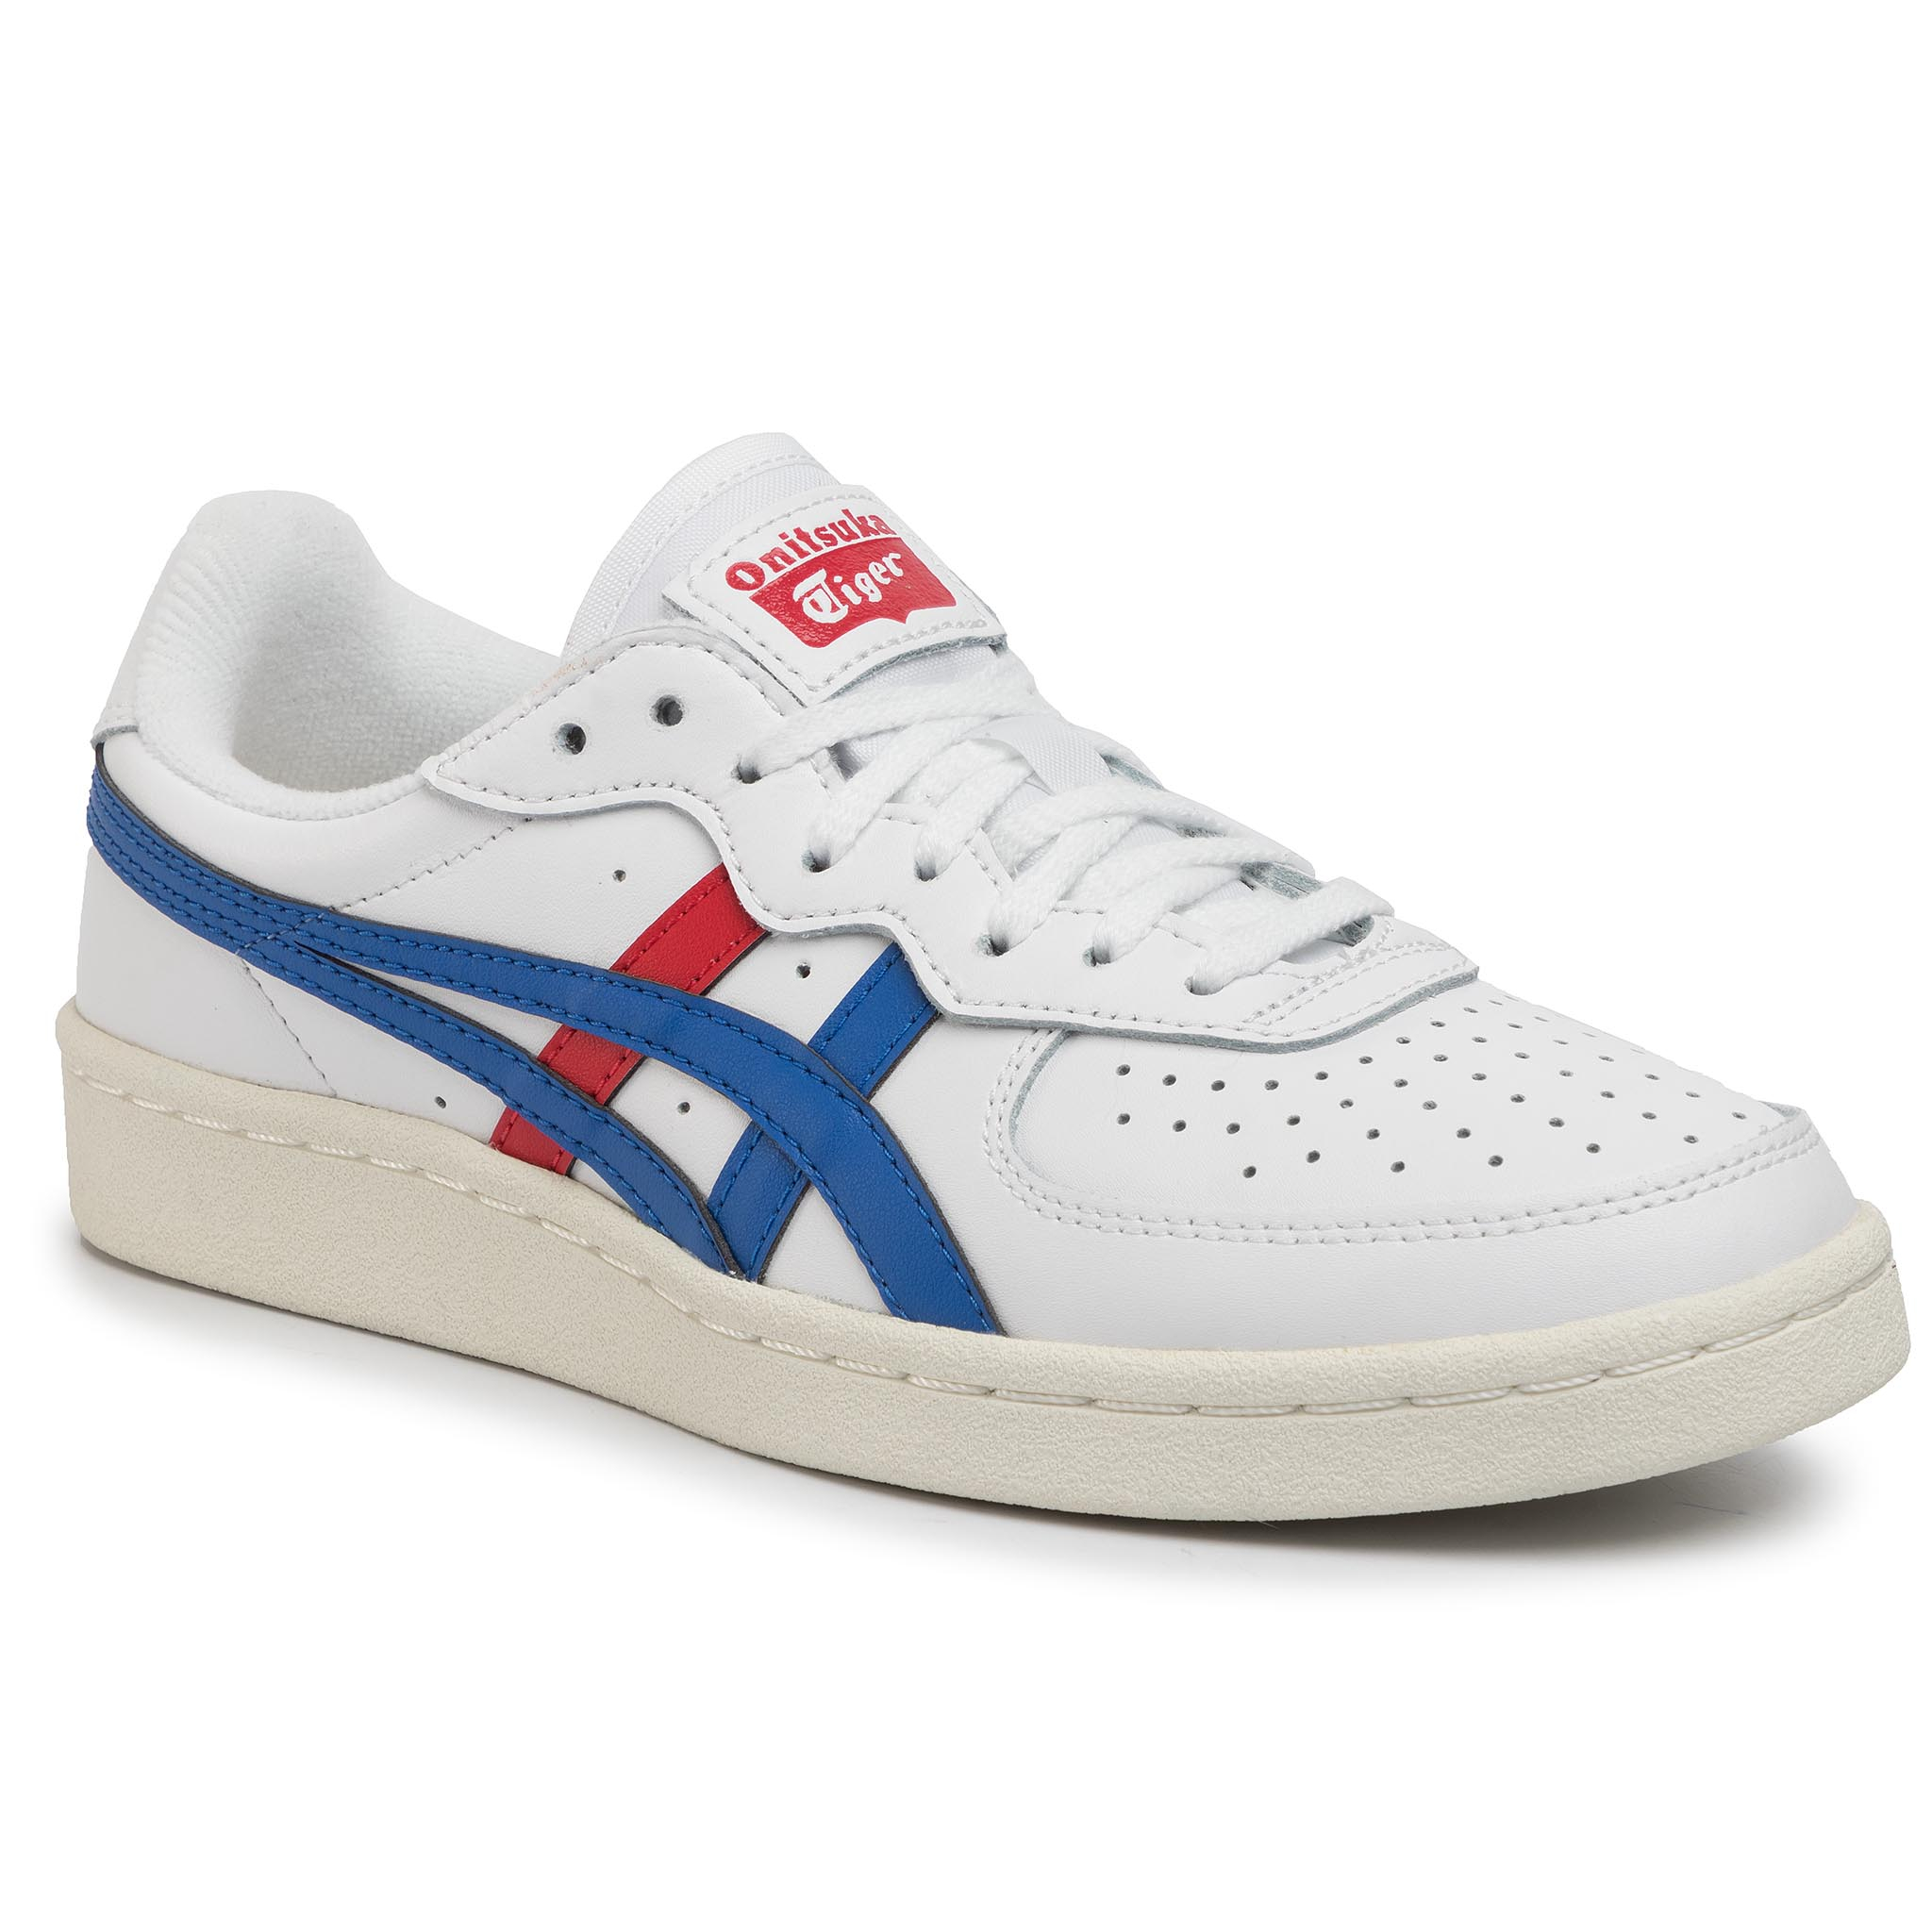 Sneaker Onitsuka Tiger Sneakers ONITSUKA TIGER - Gsm 1183A651 White/Imperial 105